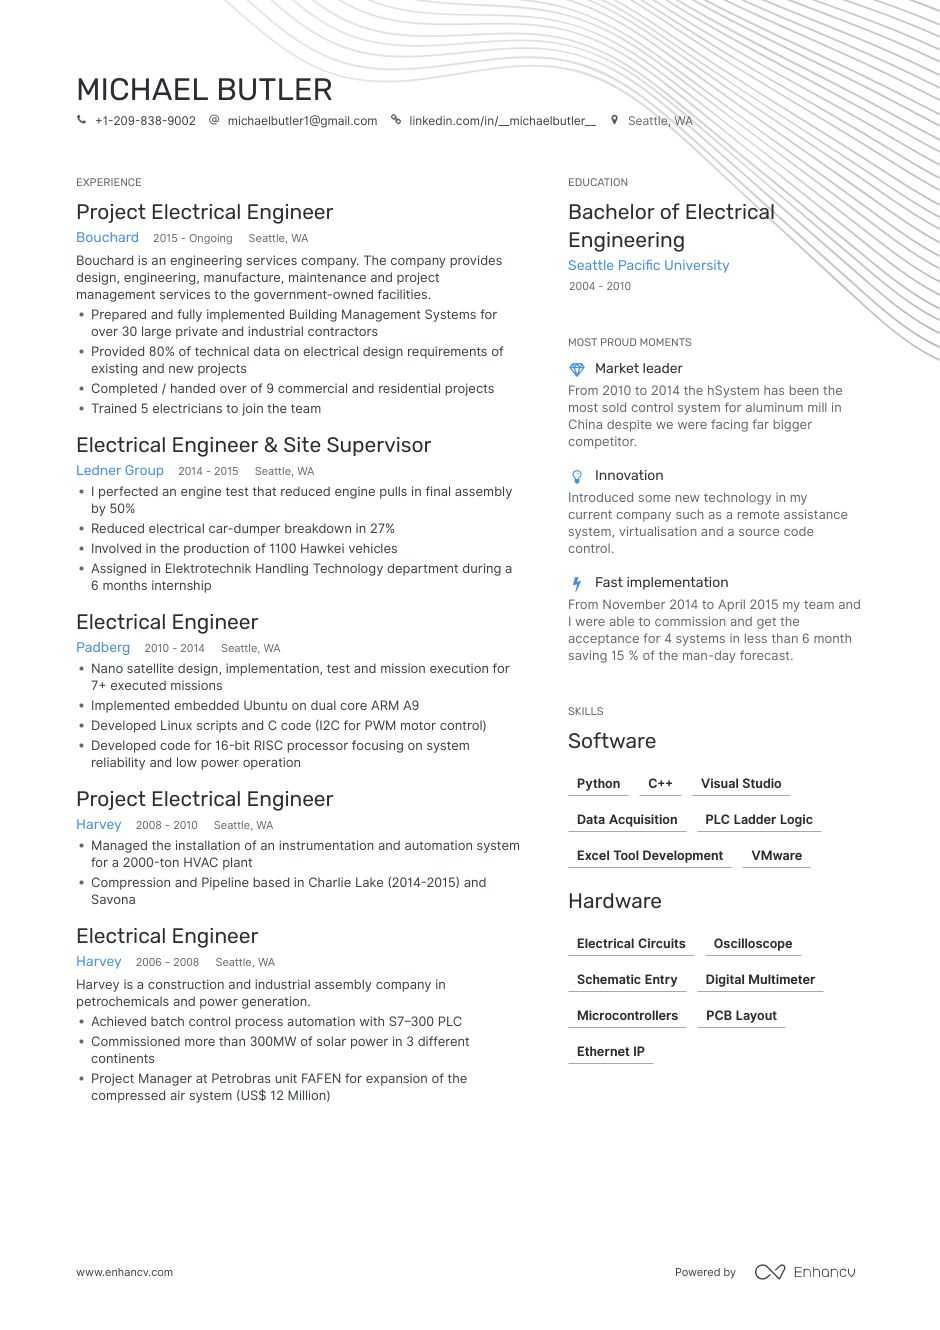 electrical engineer resume examples pro tips featured enhancv electronics test Resume Electronics Test Engineer Resume